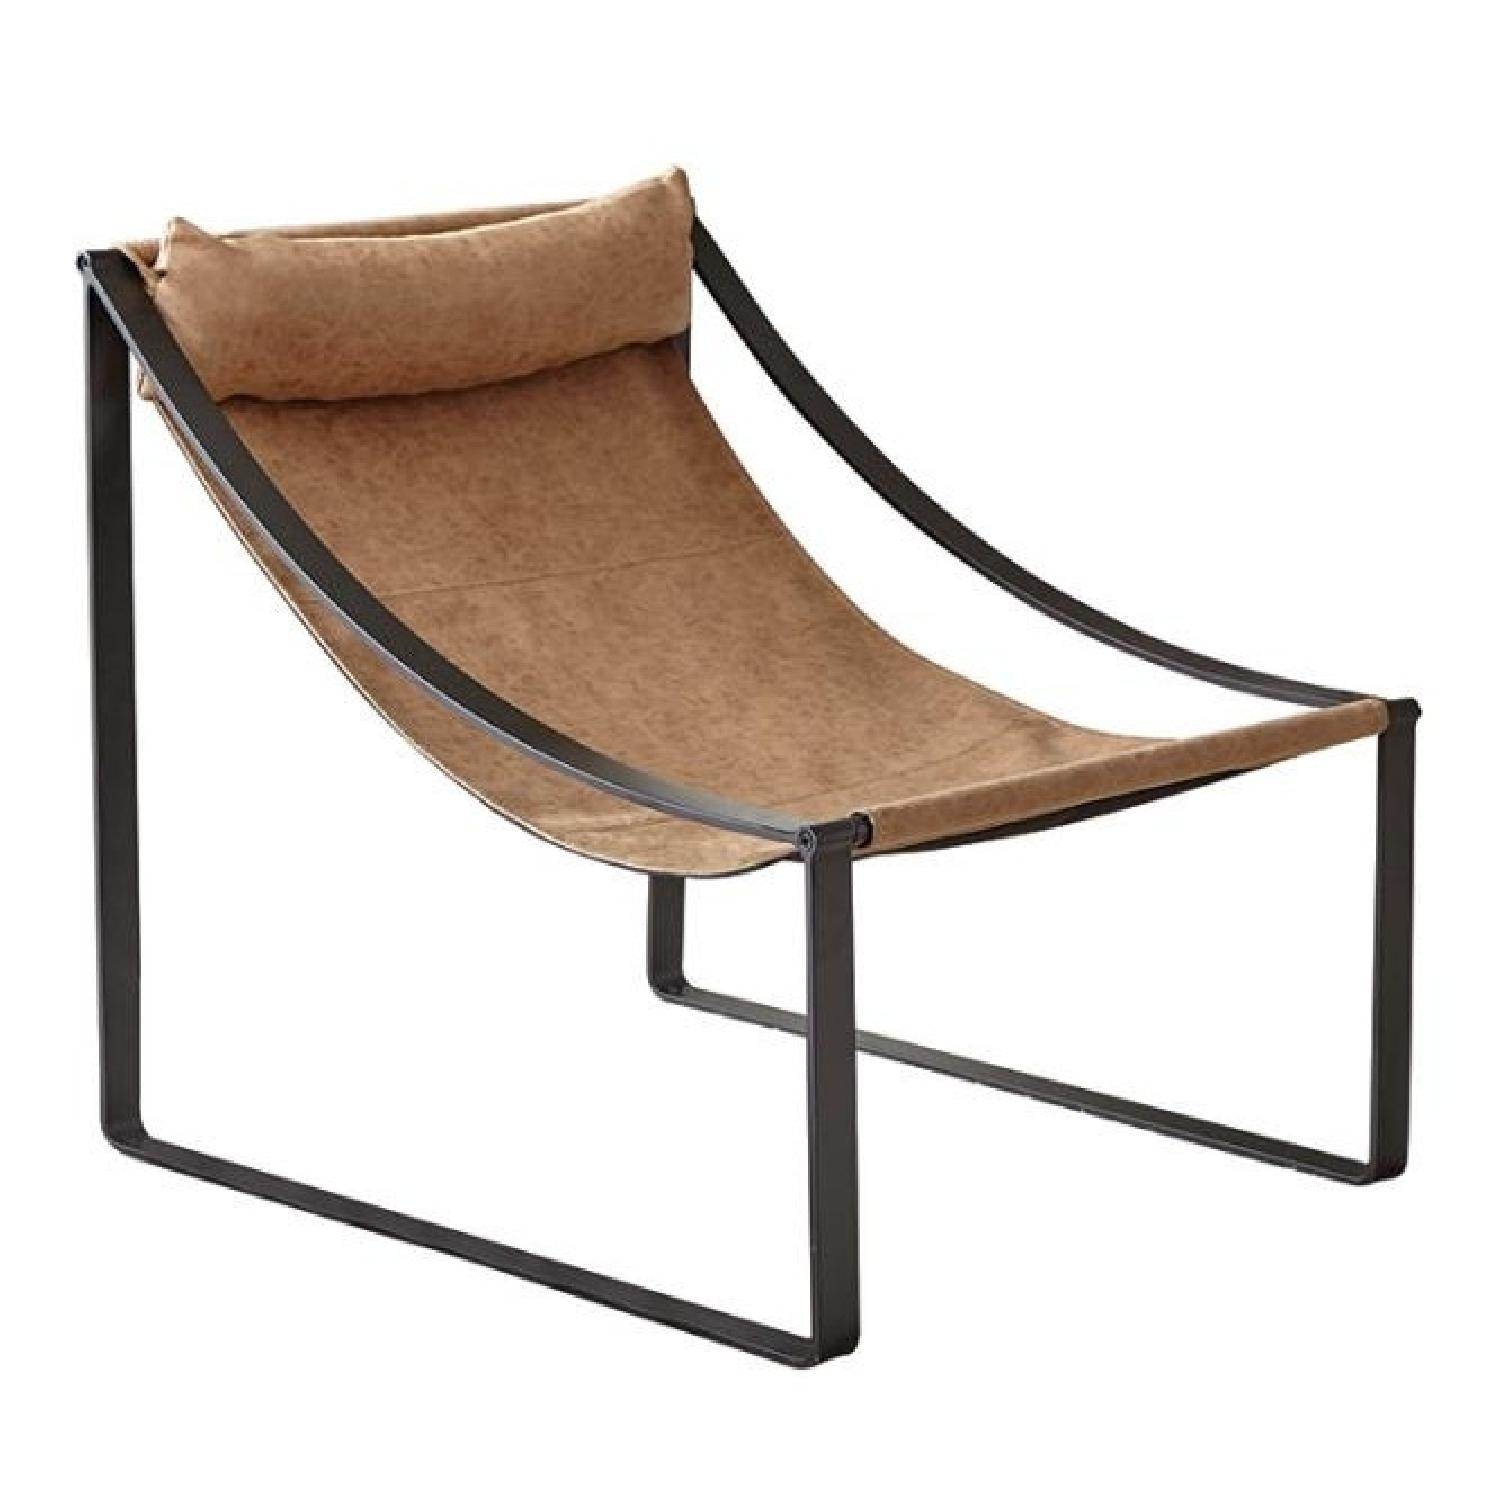 Light Brown Hammock Style Accent Chair - image-0